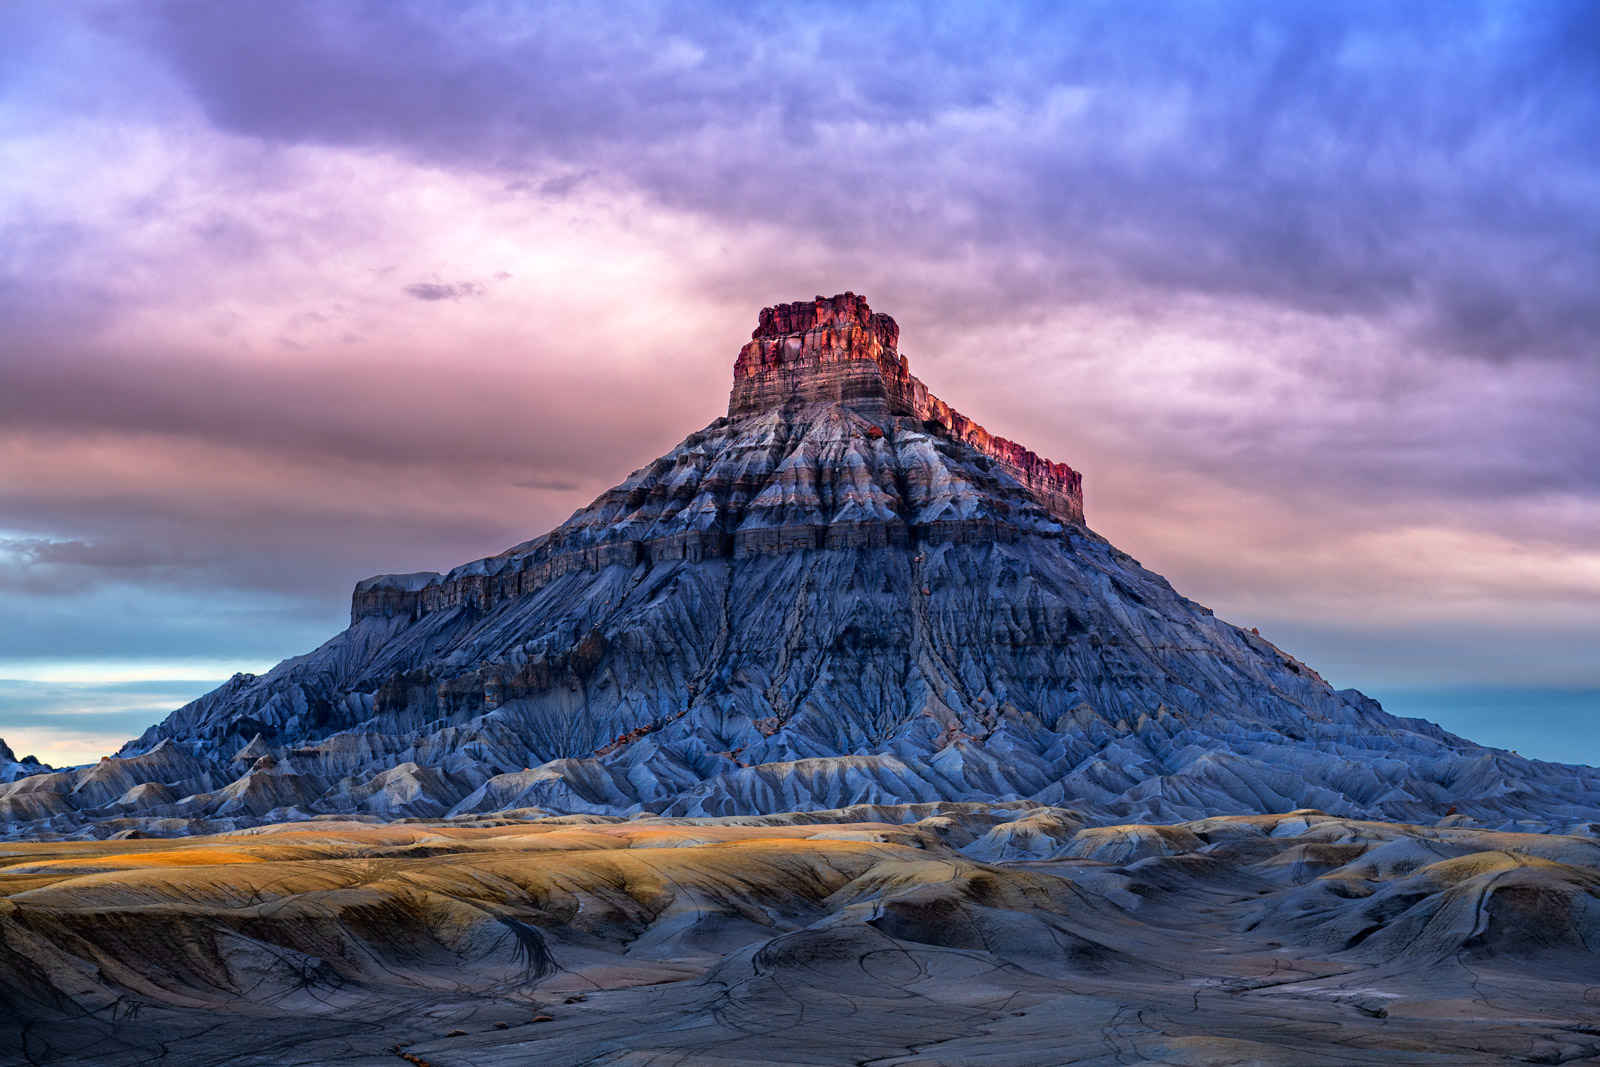 A Limited Edition, Fine Art photograph of Factory Butte in the Desert Southwest reflecting many colors caused by early sunrise...